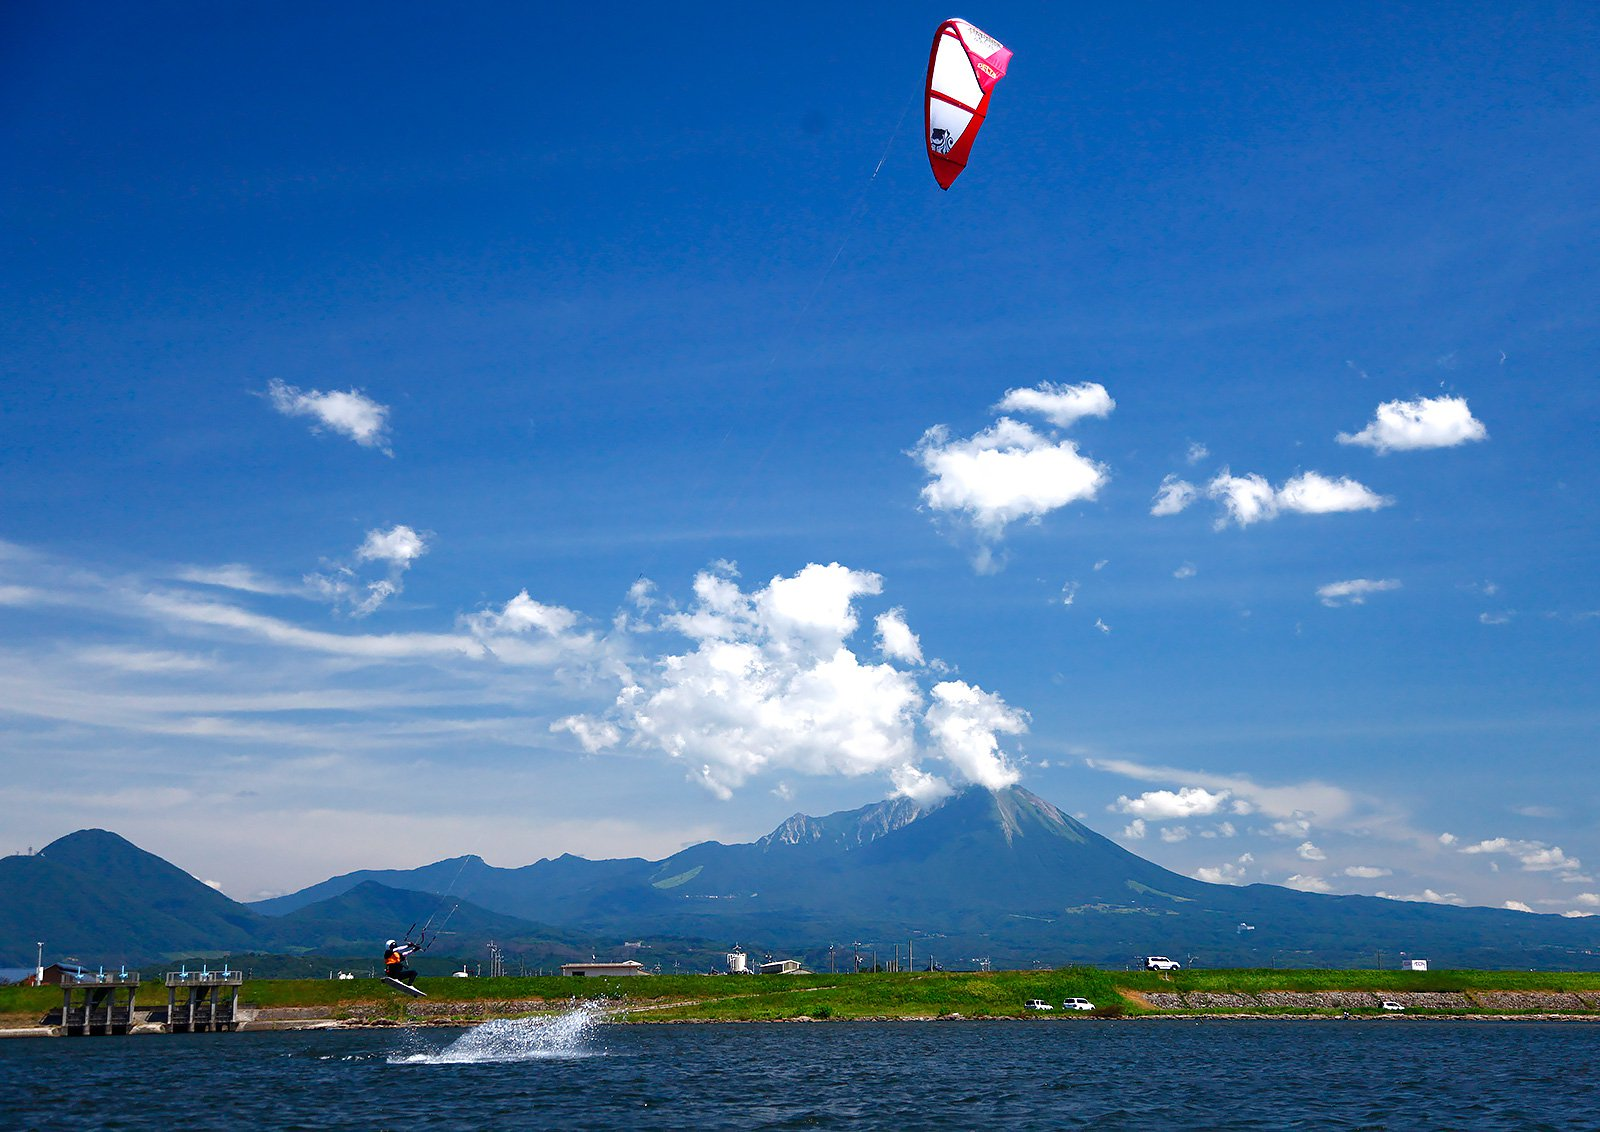 Ocean activities and Daisen